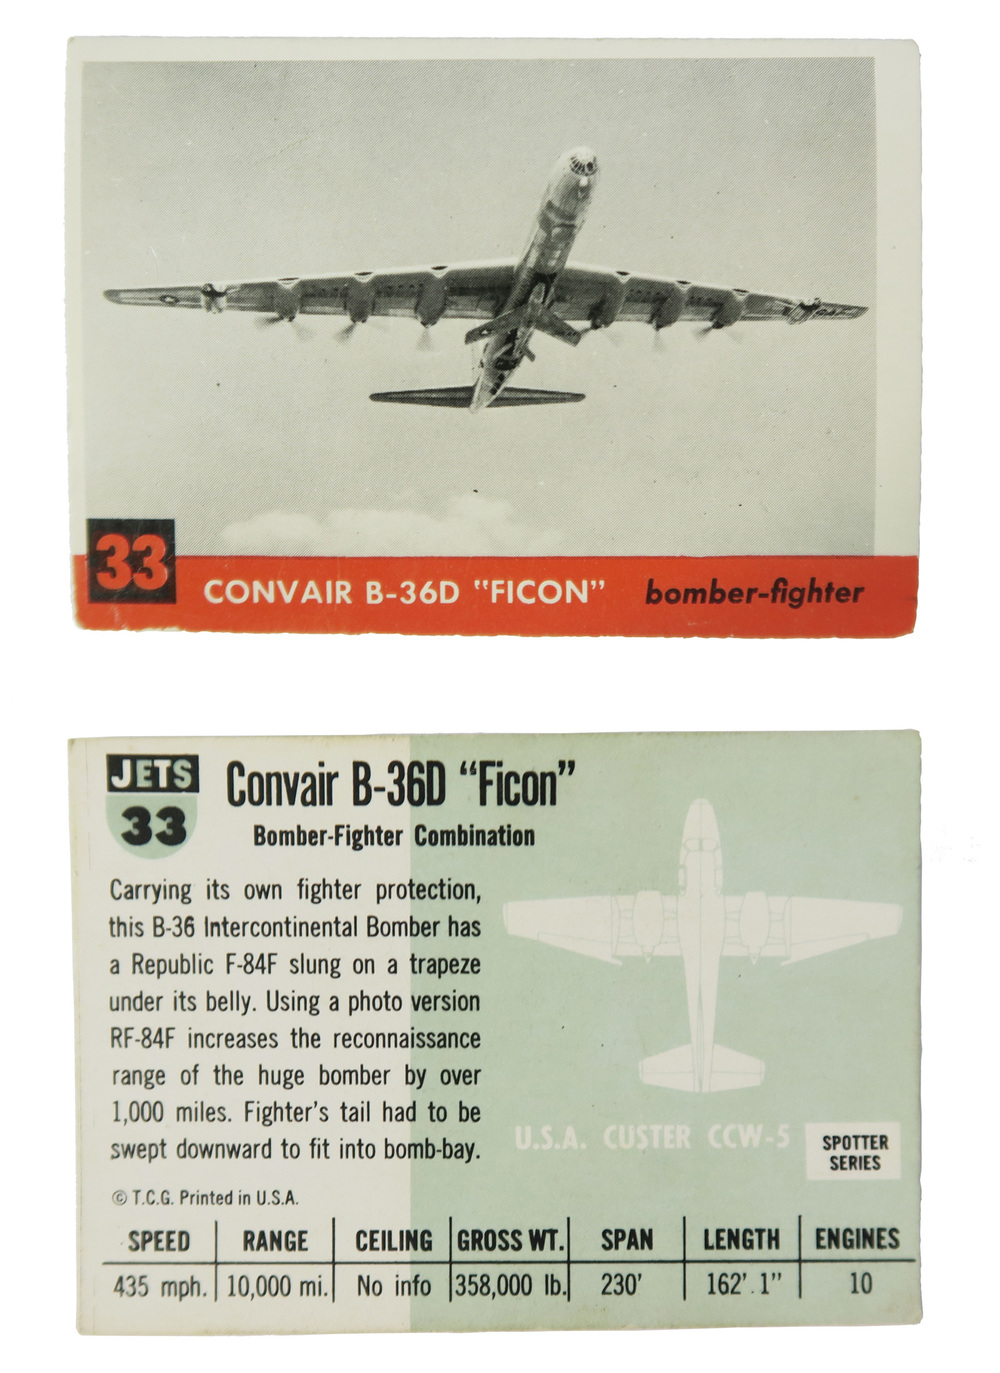 "Convair B-36D ""Ficon"" #33  Series: Jets Manufacture: Topps Chewing Gum Card Dimensions: 2.937 x 2.062 inches USA -1952"